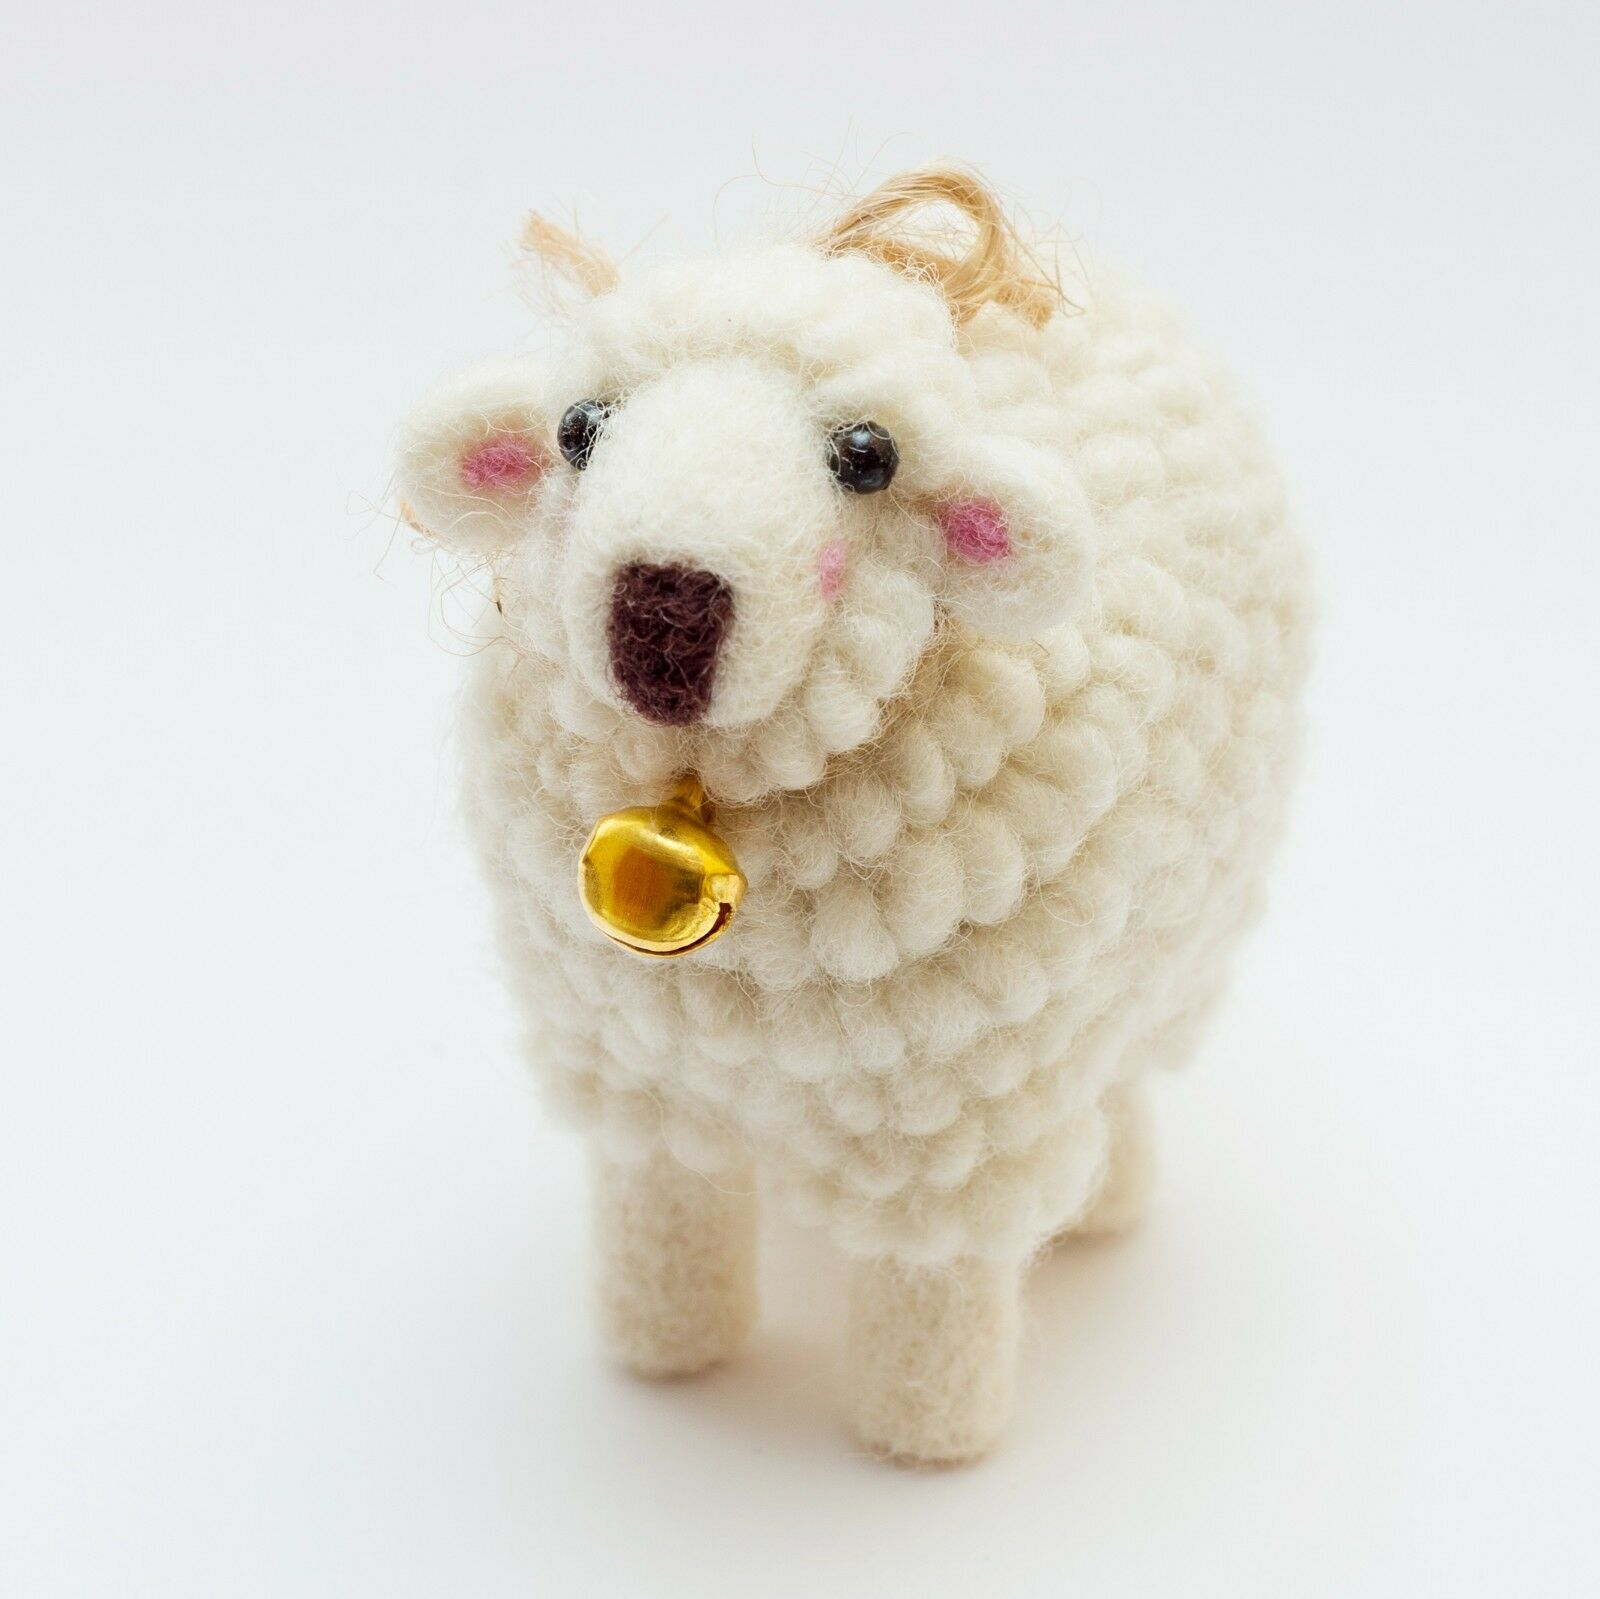 Wool Toy Sheep Miniature Weiß Soft 100% Needle Felted  Sheep Gift Decor